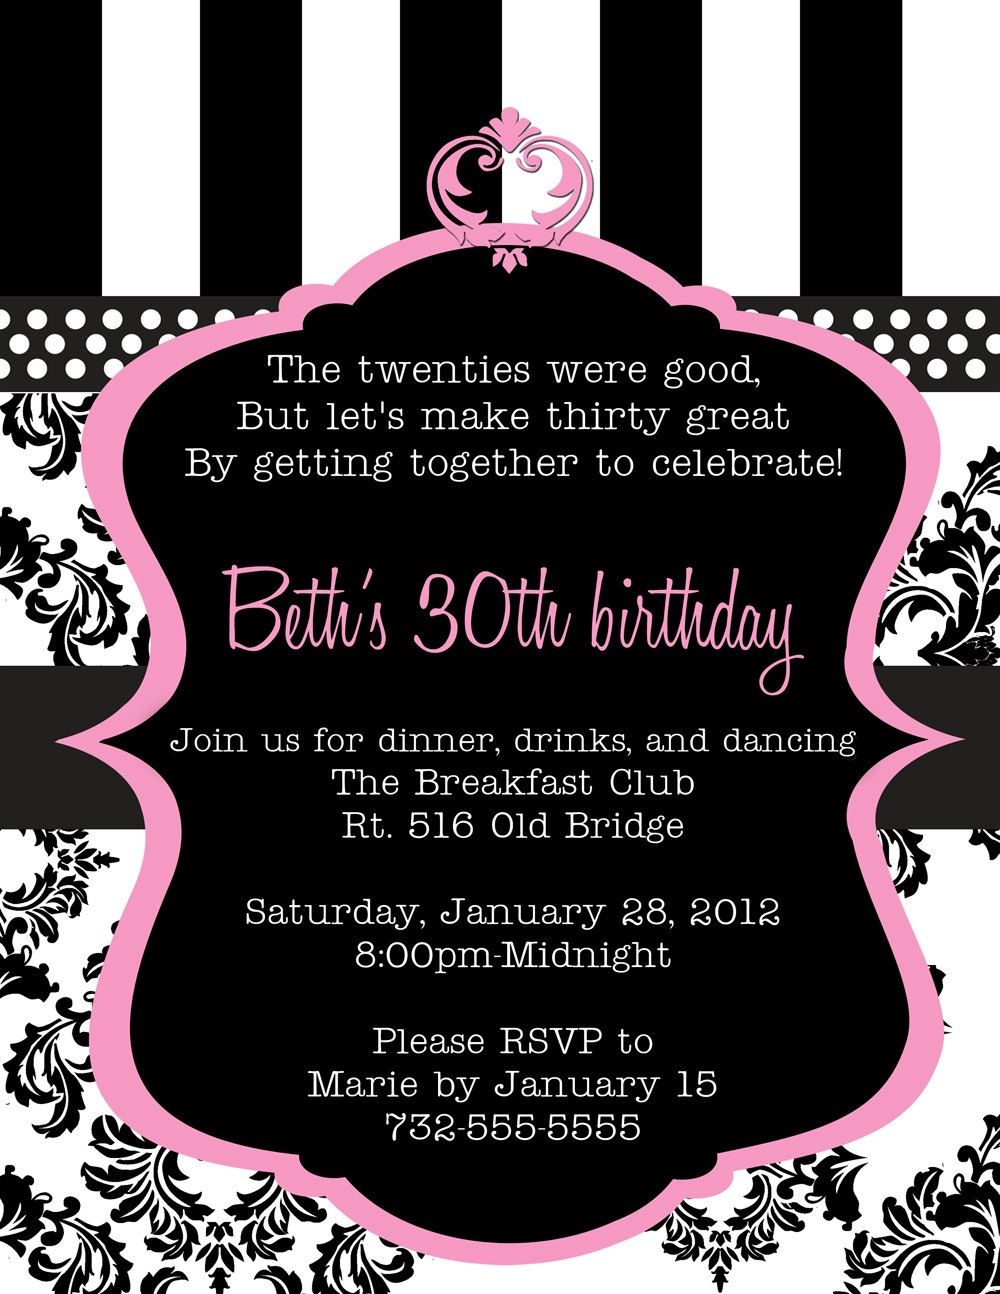 birthday party invitation templates net th birthday party invitation templates mickey mouse birthday invitations